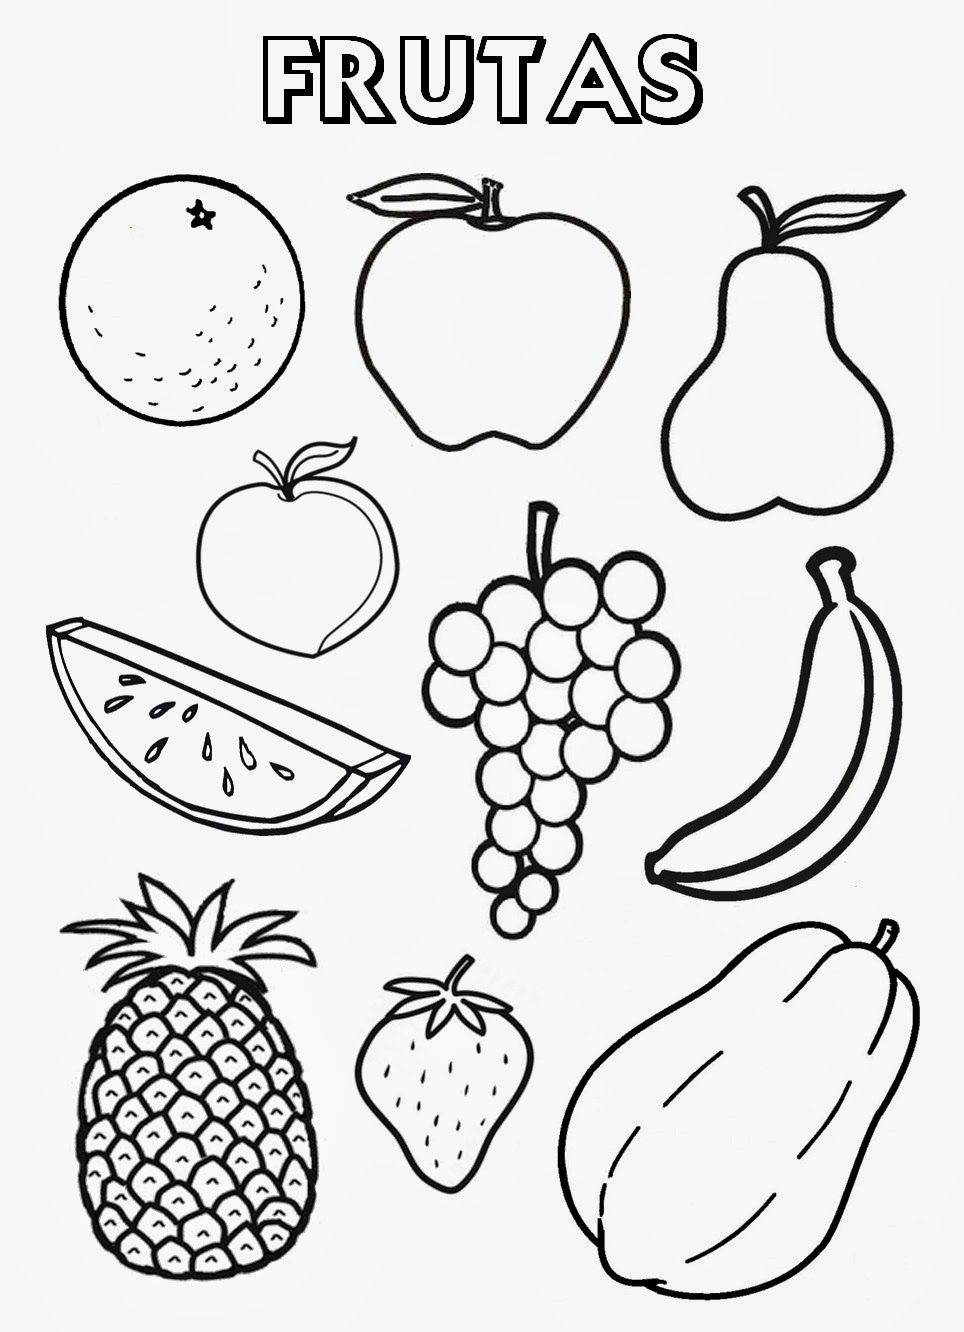 frutas coloring page de todo pinterest spanish and